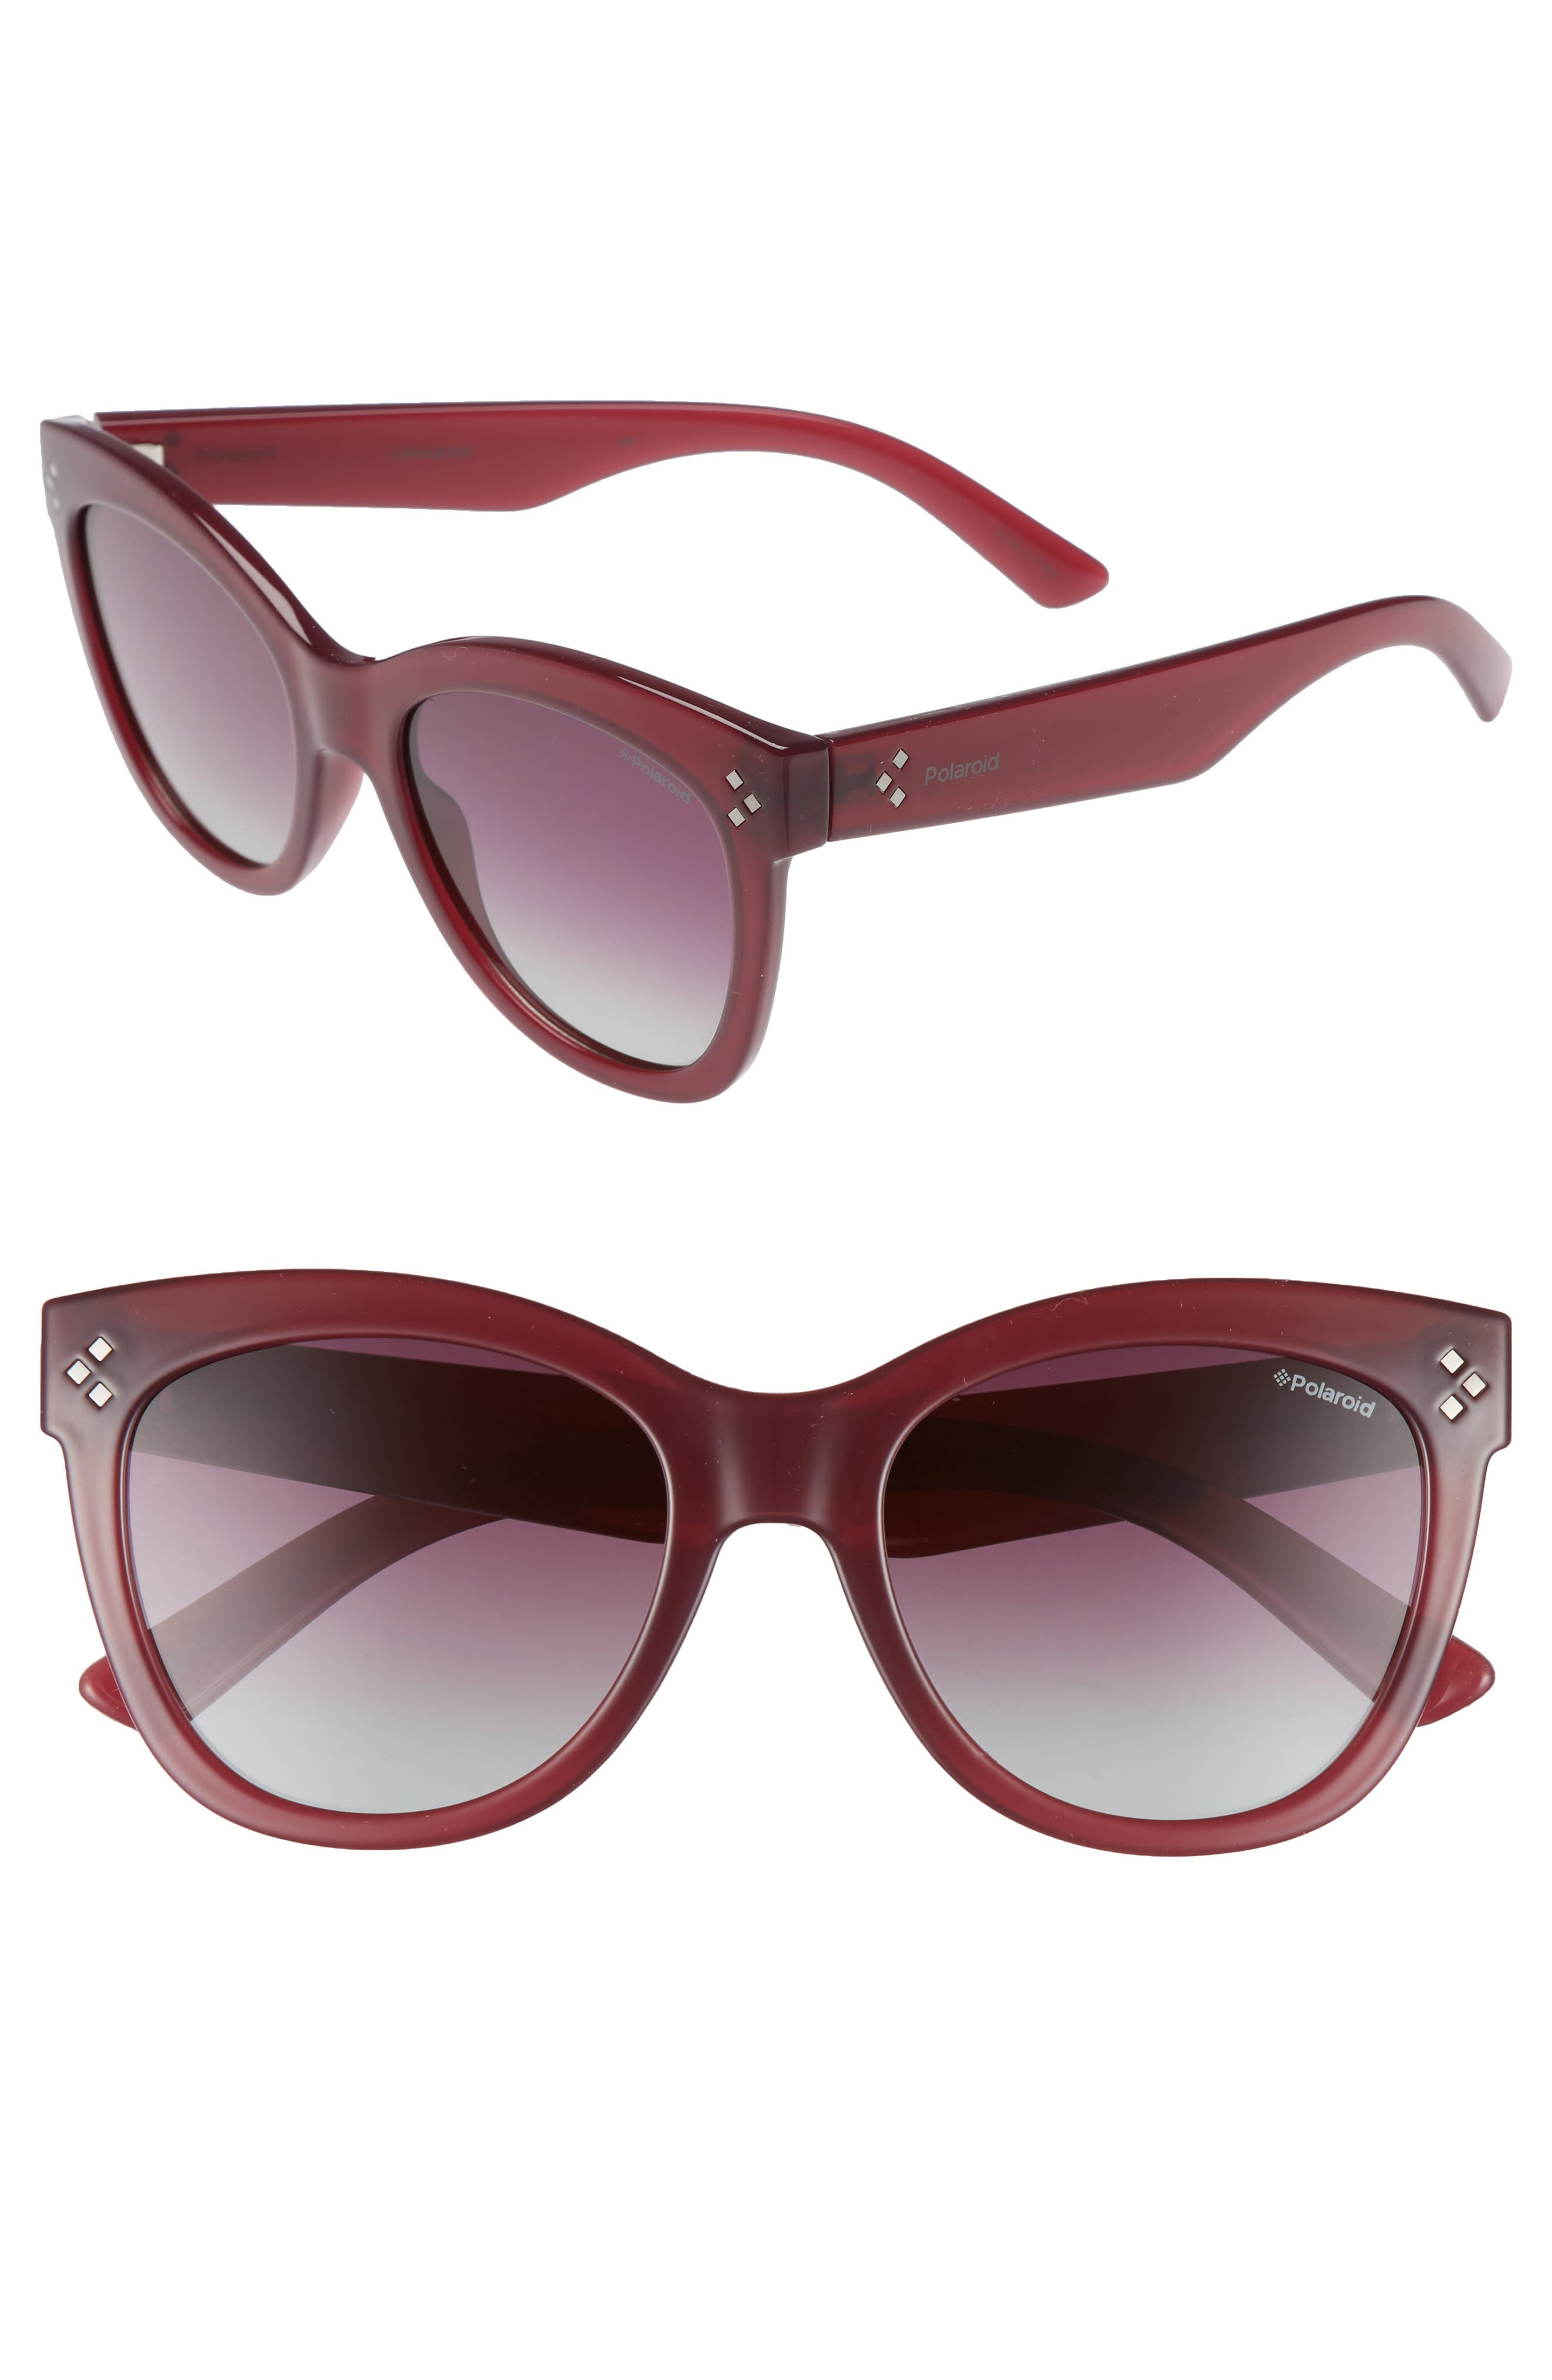 54mm Polarized Sunglasses,                             Main thumbnail 1, color,                             Red